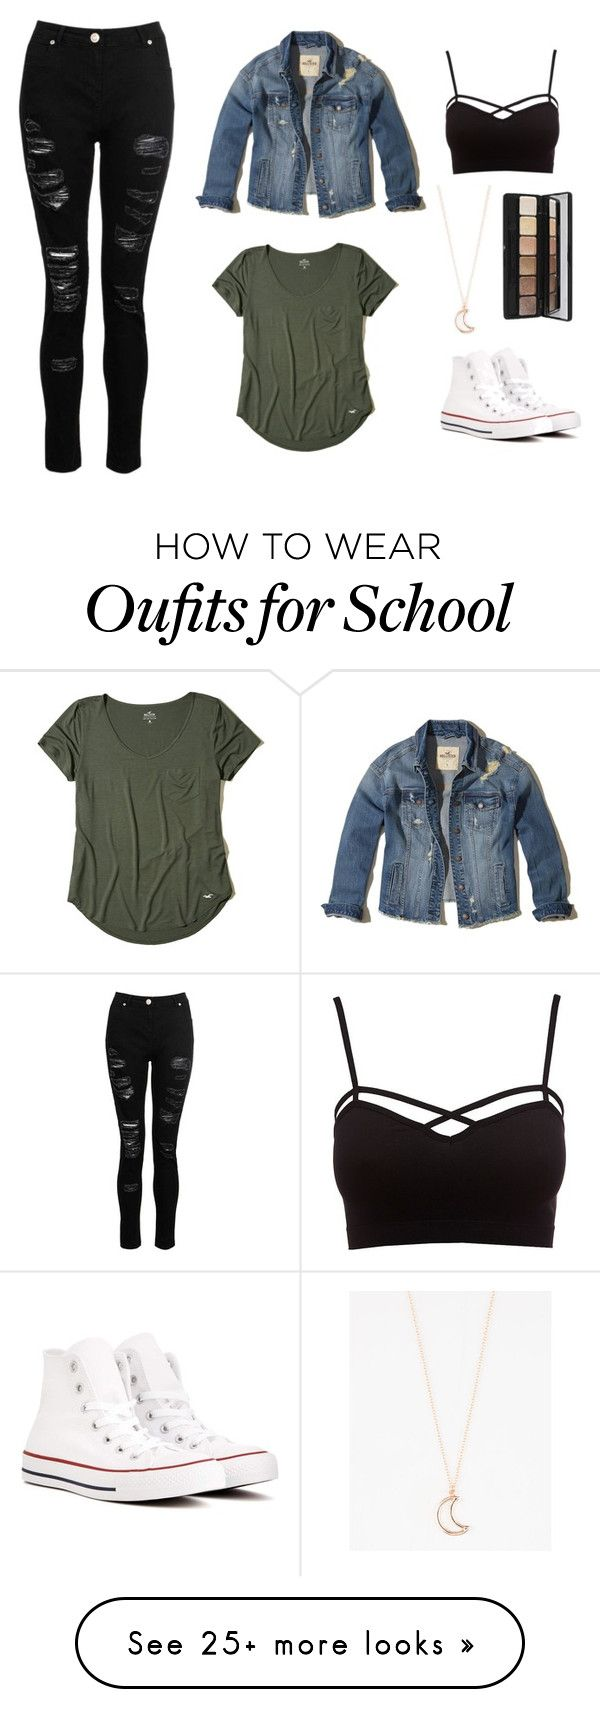 Basically looks like this dress denim jacket converse example -  School 79 By Annao133 On Polyvore Featuring Dorothy Perkins Hollister Co Jean Jacketsdenim Jacketsteen School Outfitsteen